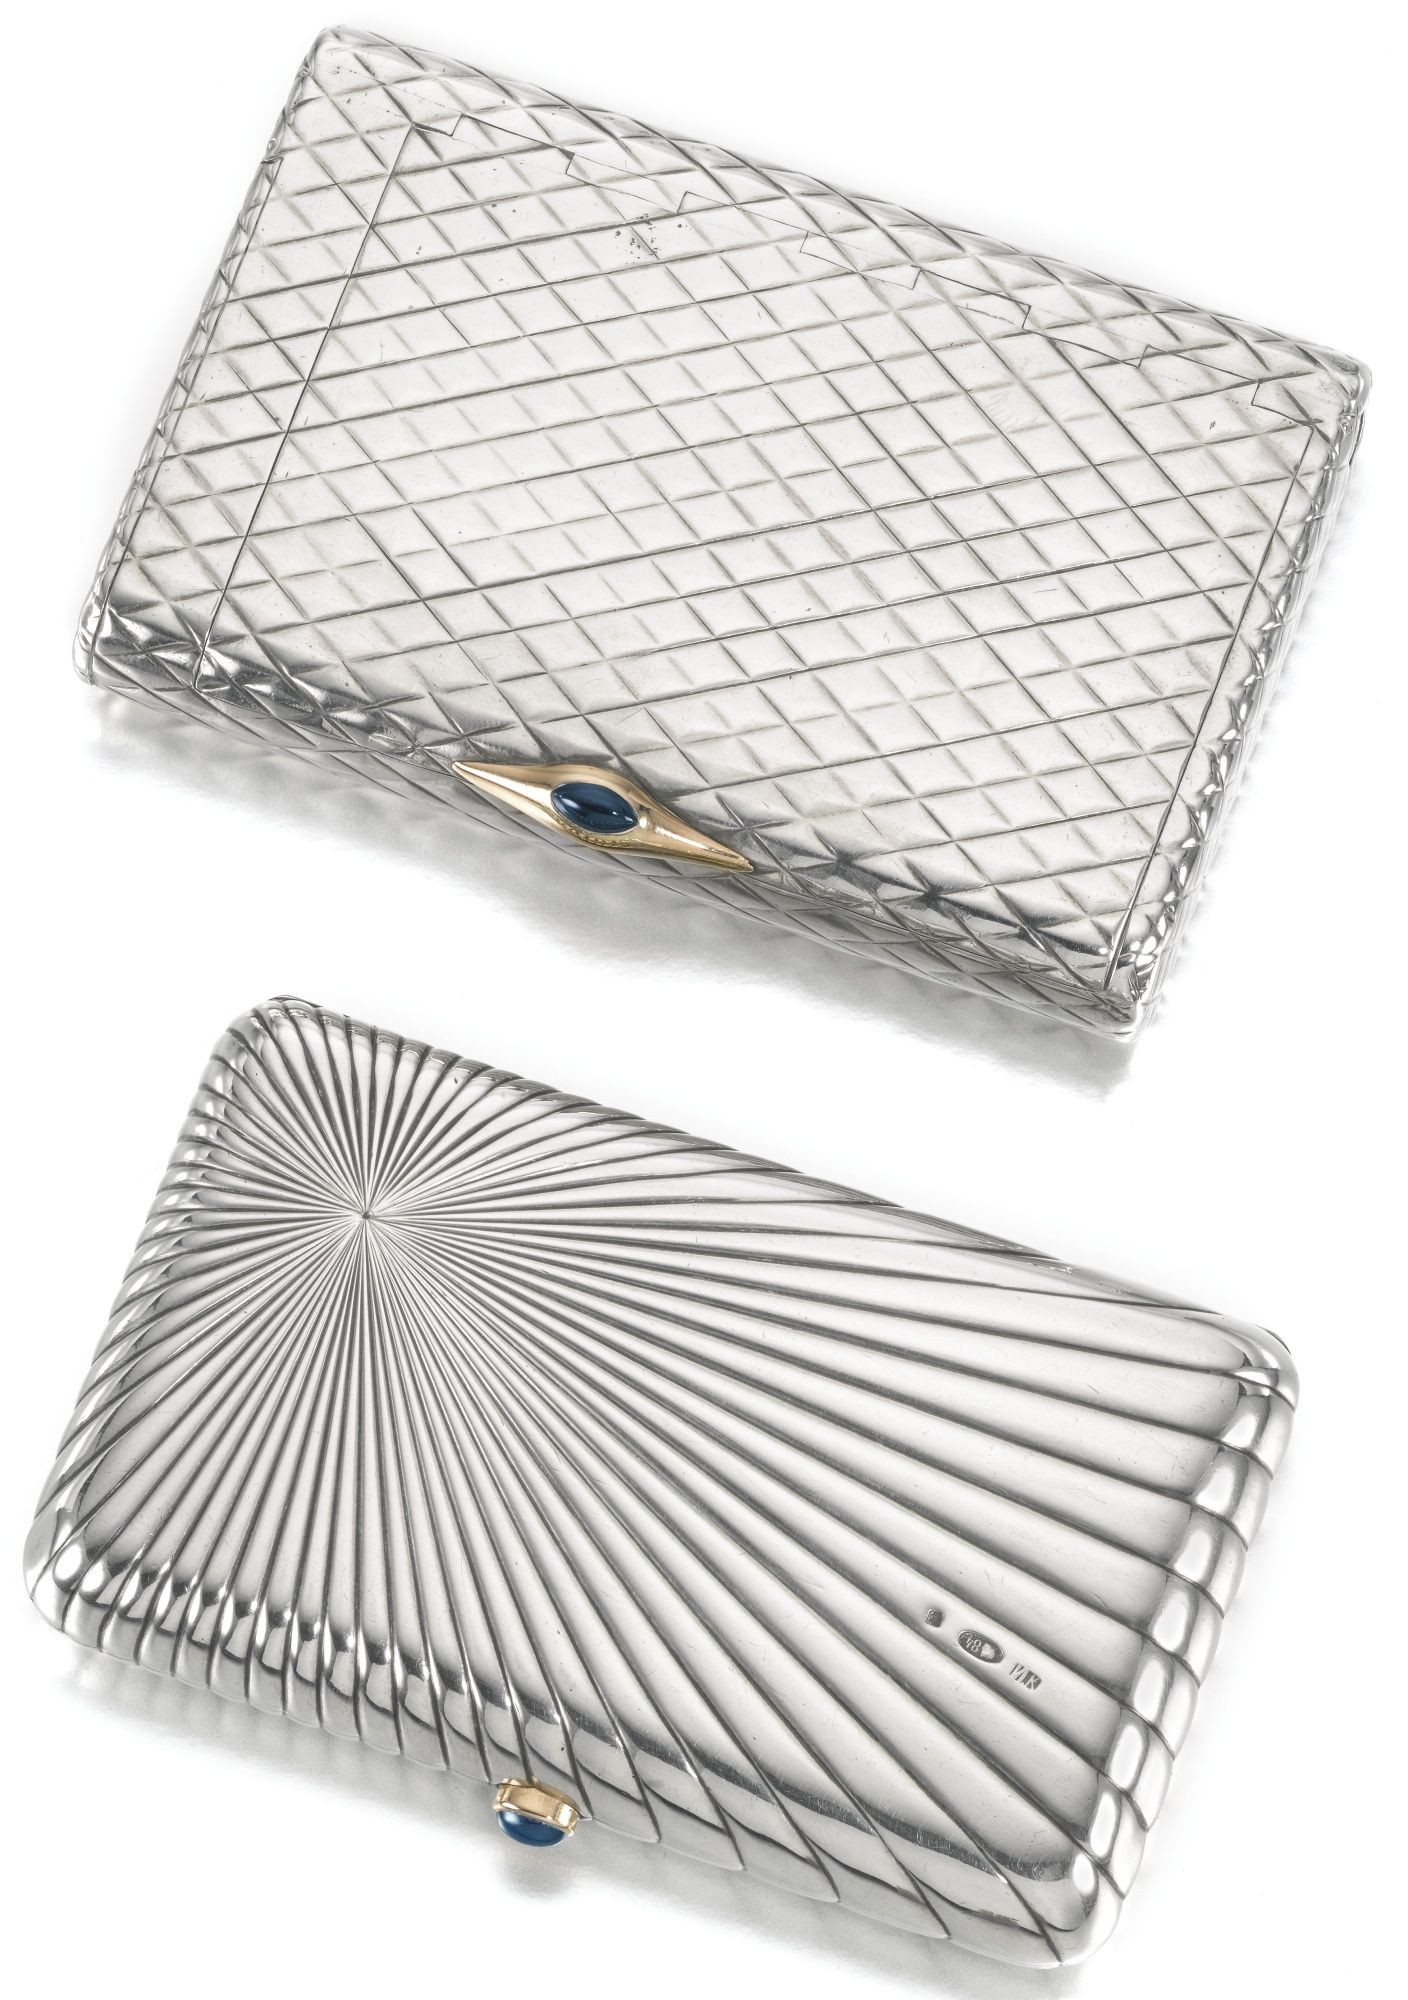 Two Silver Cigarette Cases The First Pavel Volkov Moscow 1899 1908 Surface Wiring Channel Of Raised Chevrons With Tinder Cord And Vesta Compartment